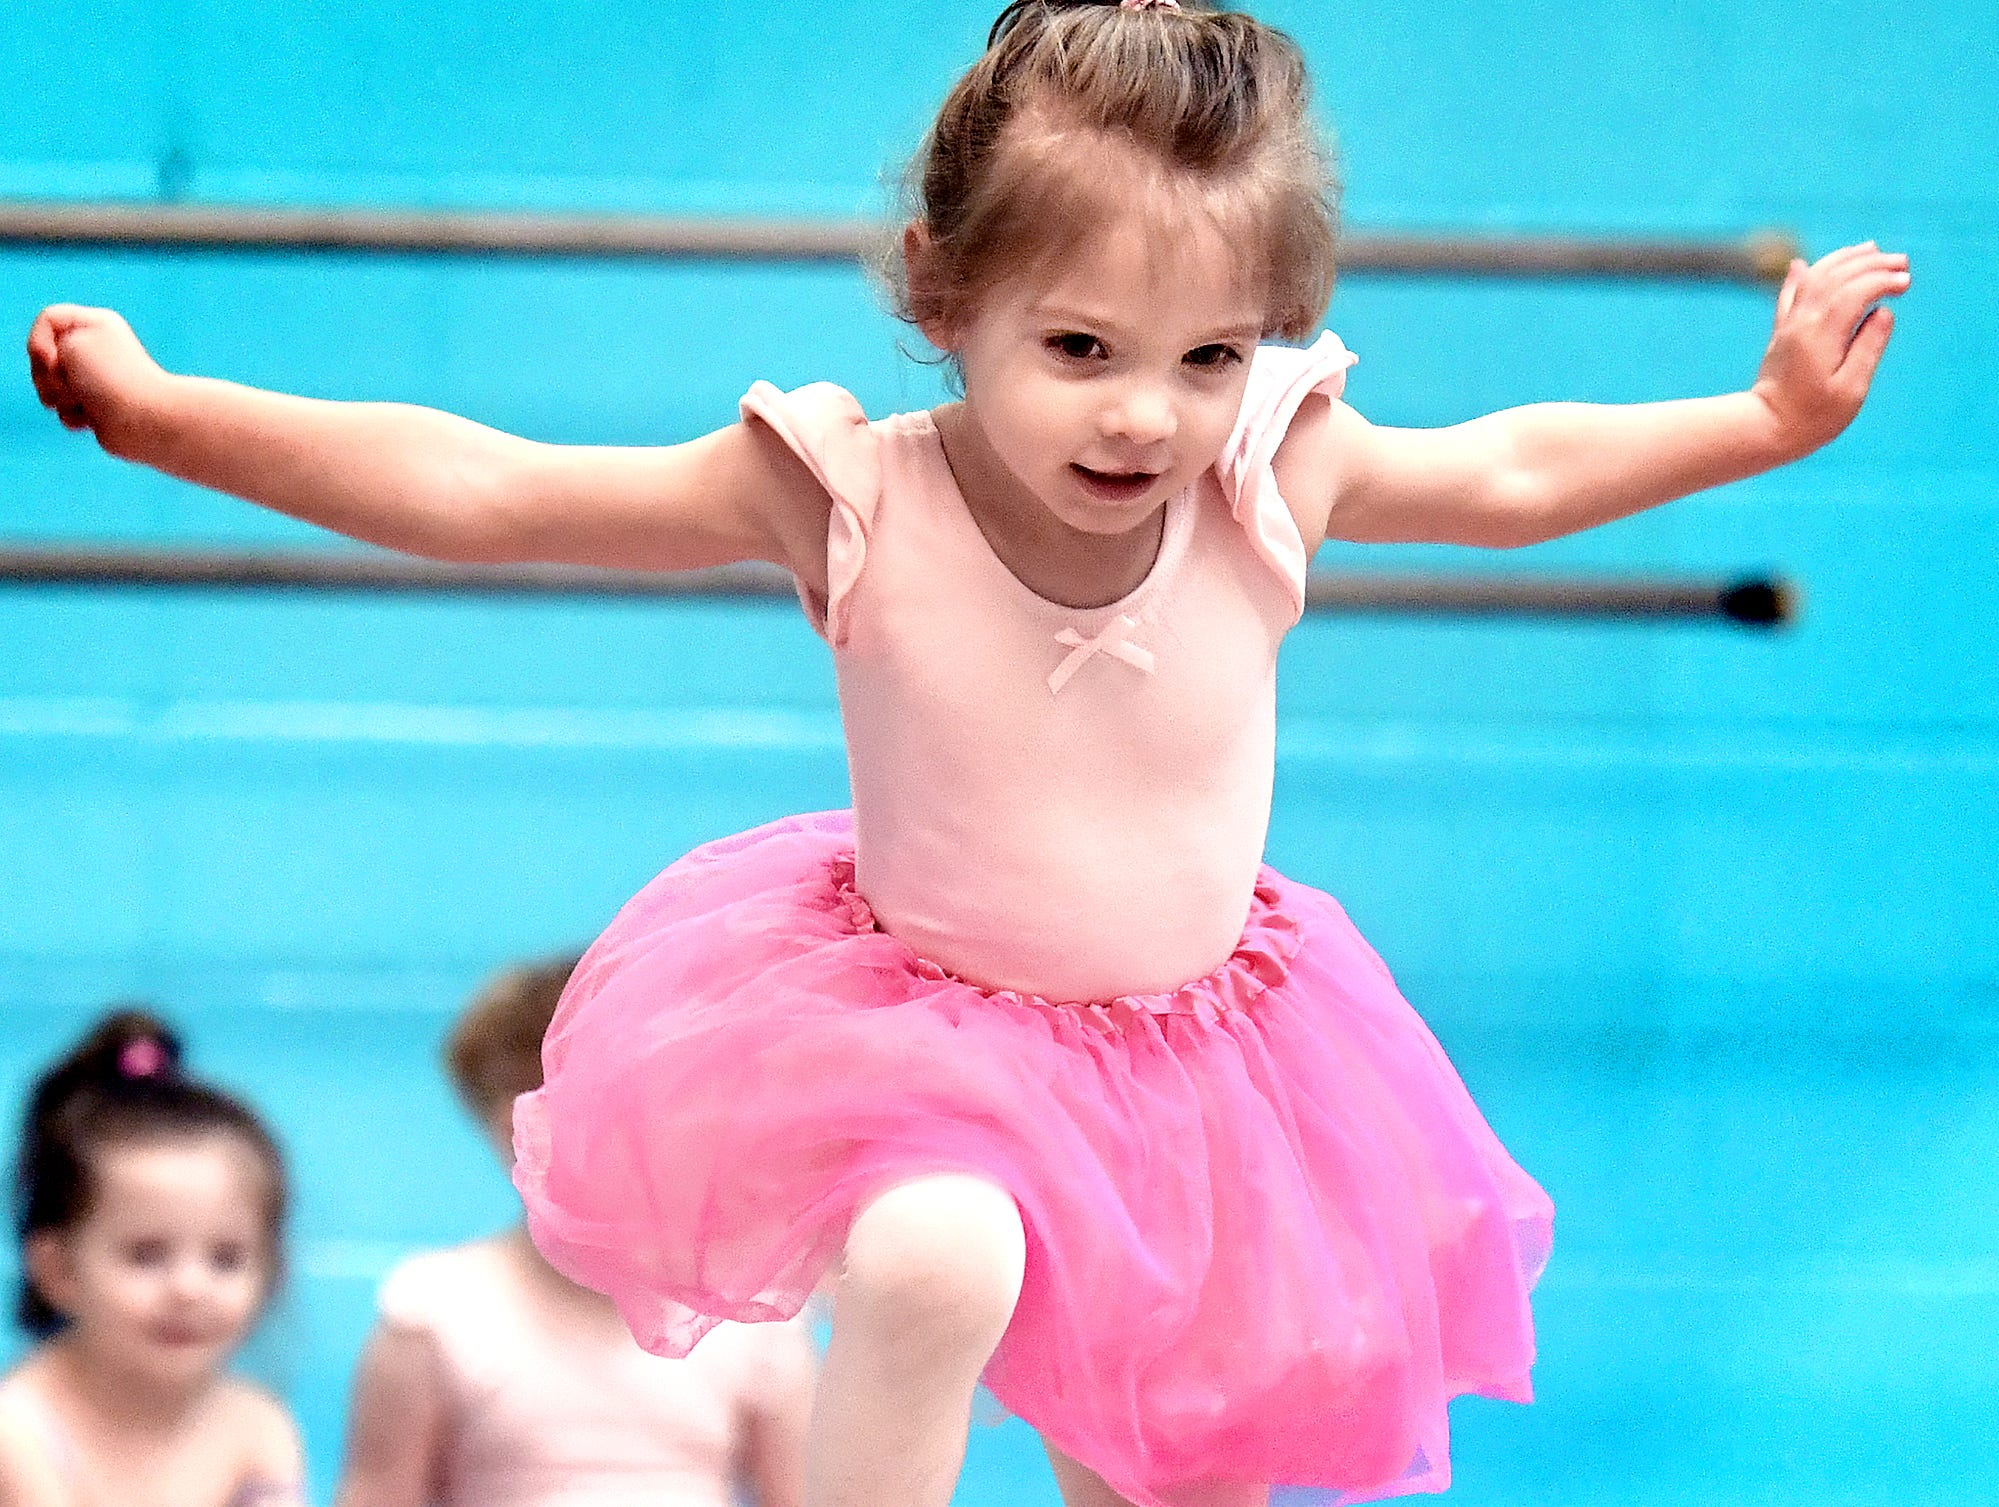 Aundrea Baughman, 3, of Dallastown, makes a jump during the Twinkle Babies class at Greater York Dance Thursday, April 4, 2019. The four-week program, for children aged 2 to 4, is part of the Twinkle Star Dance Program for early childhood dancers. Bill Kalina photo